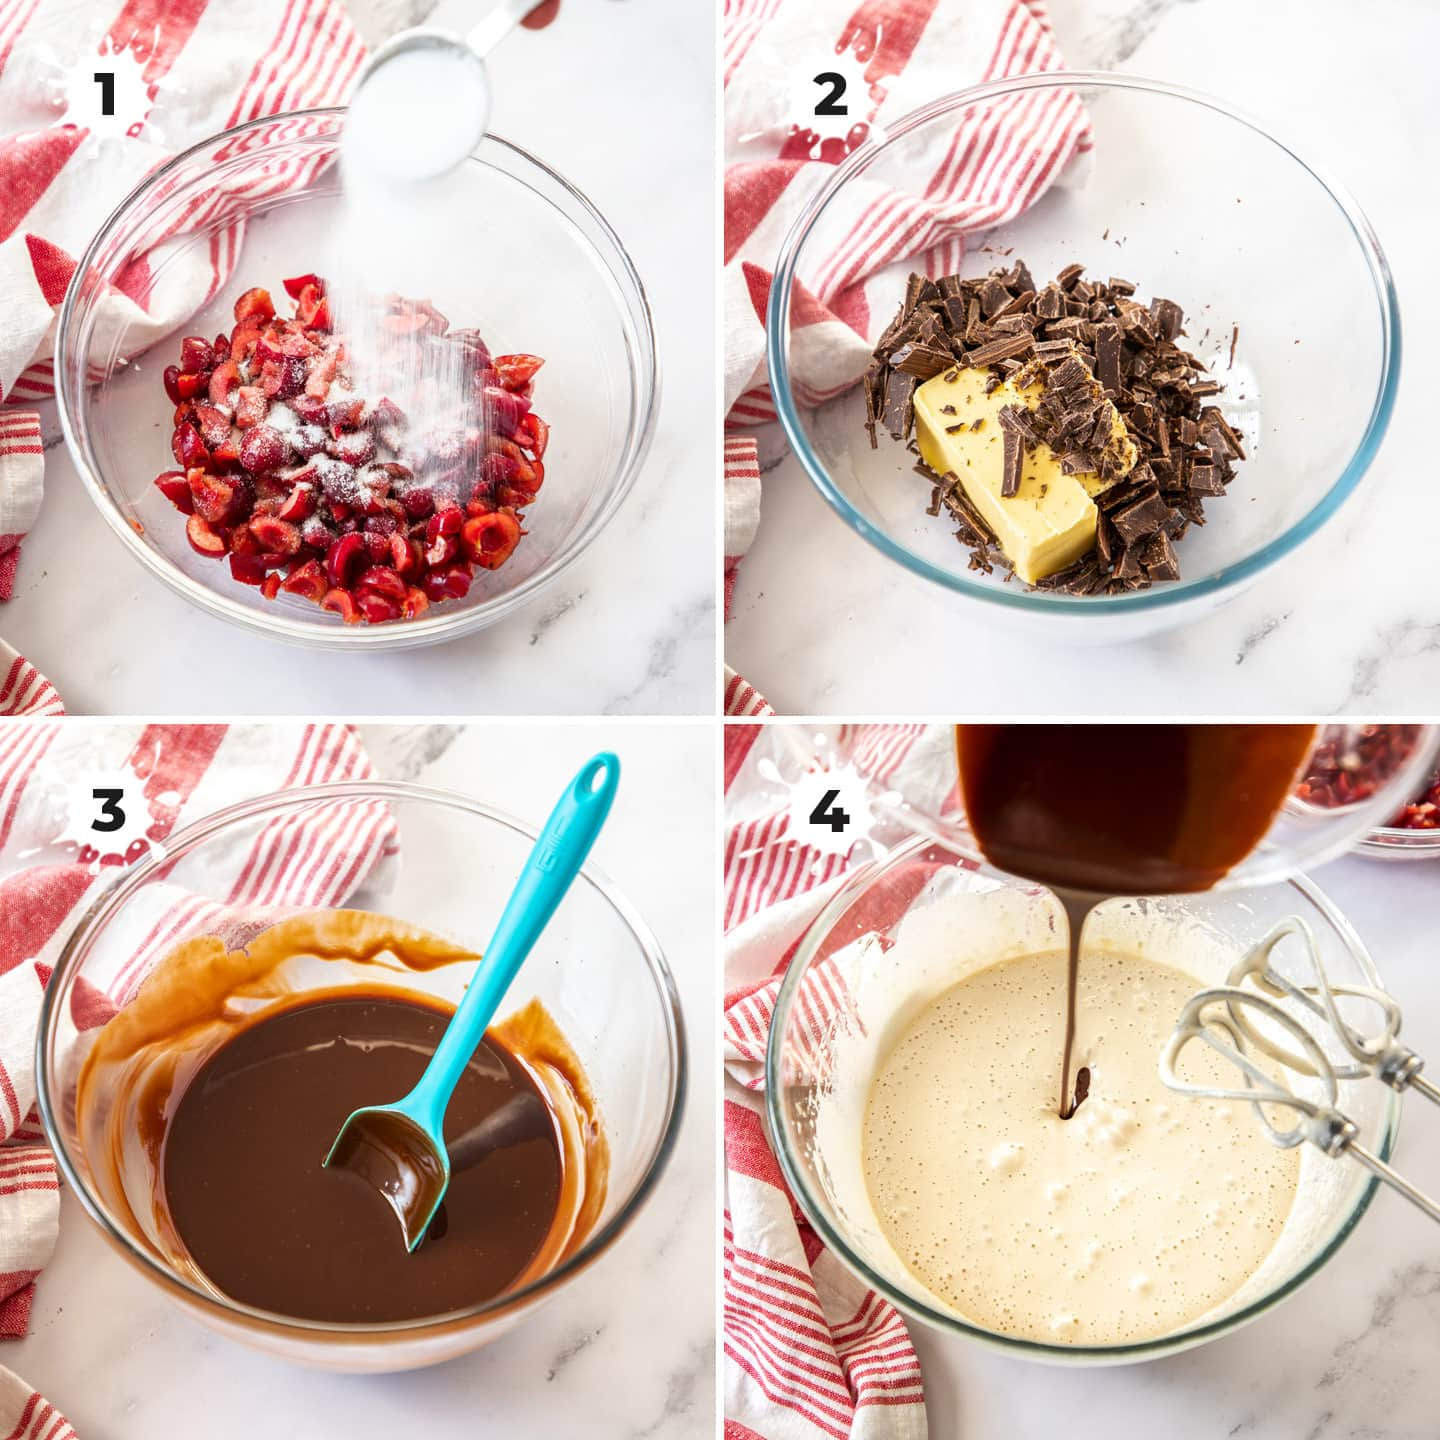 Combining ingredients for black forest brownies in a glass bowl